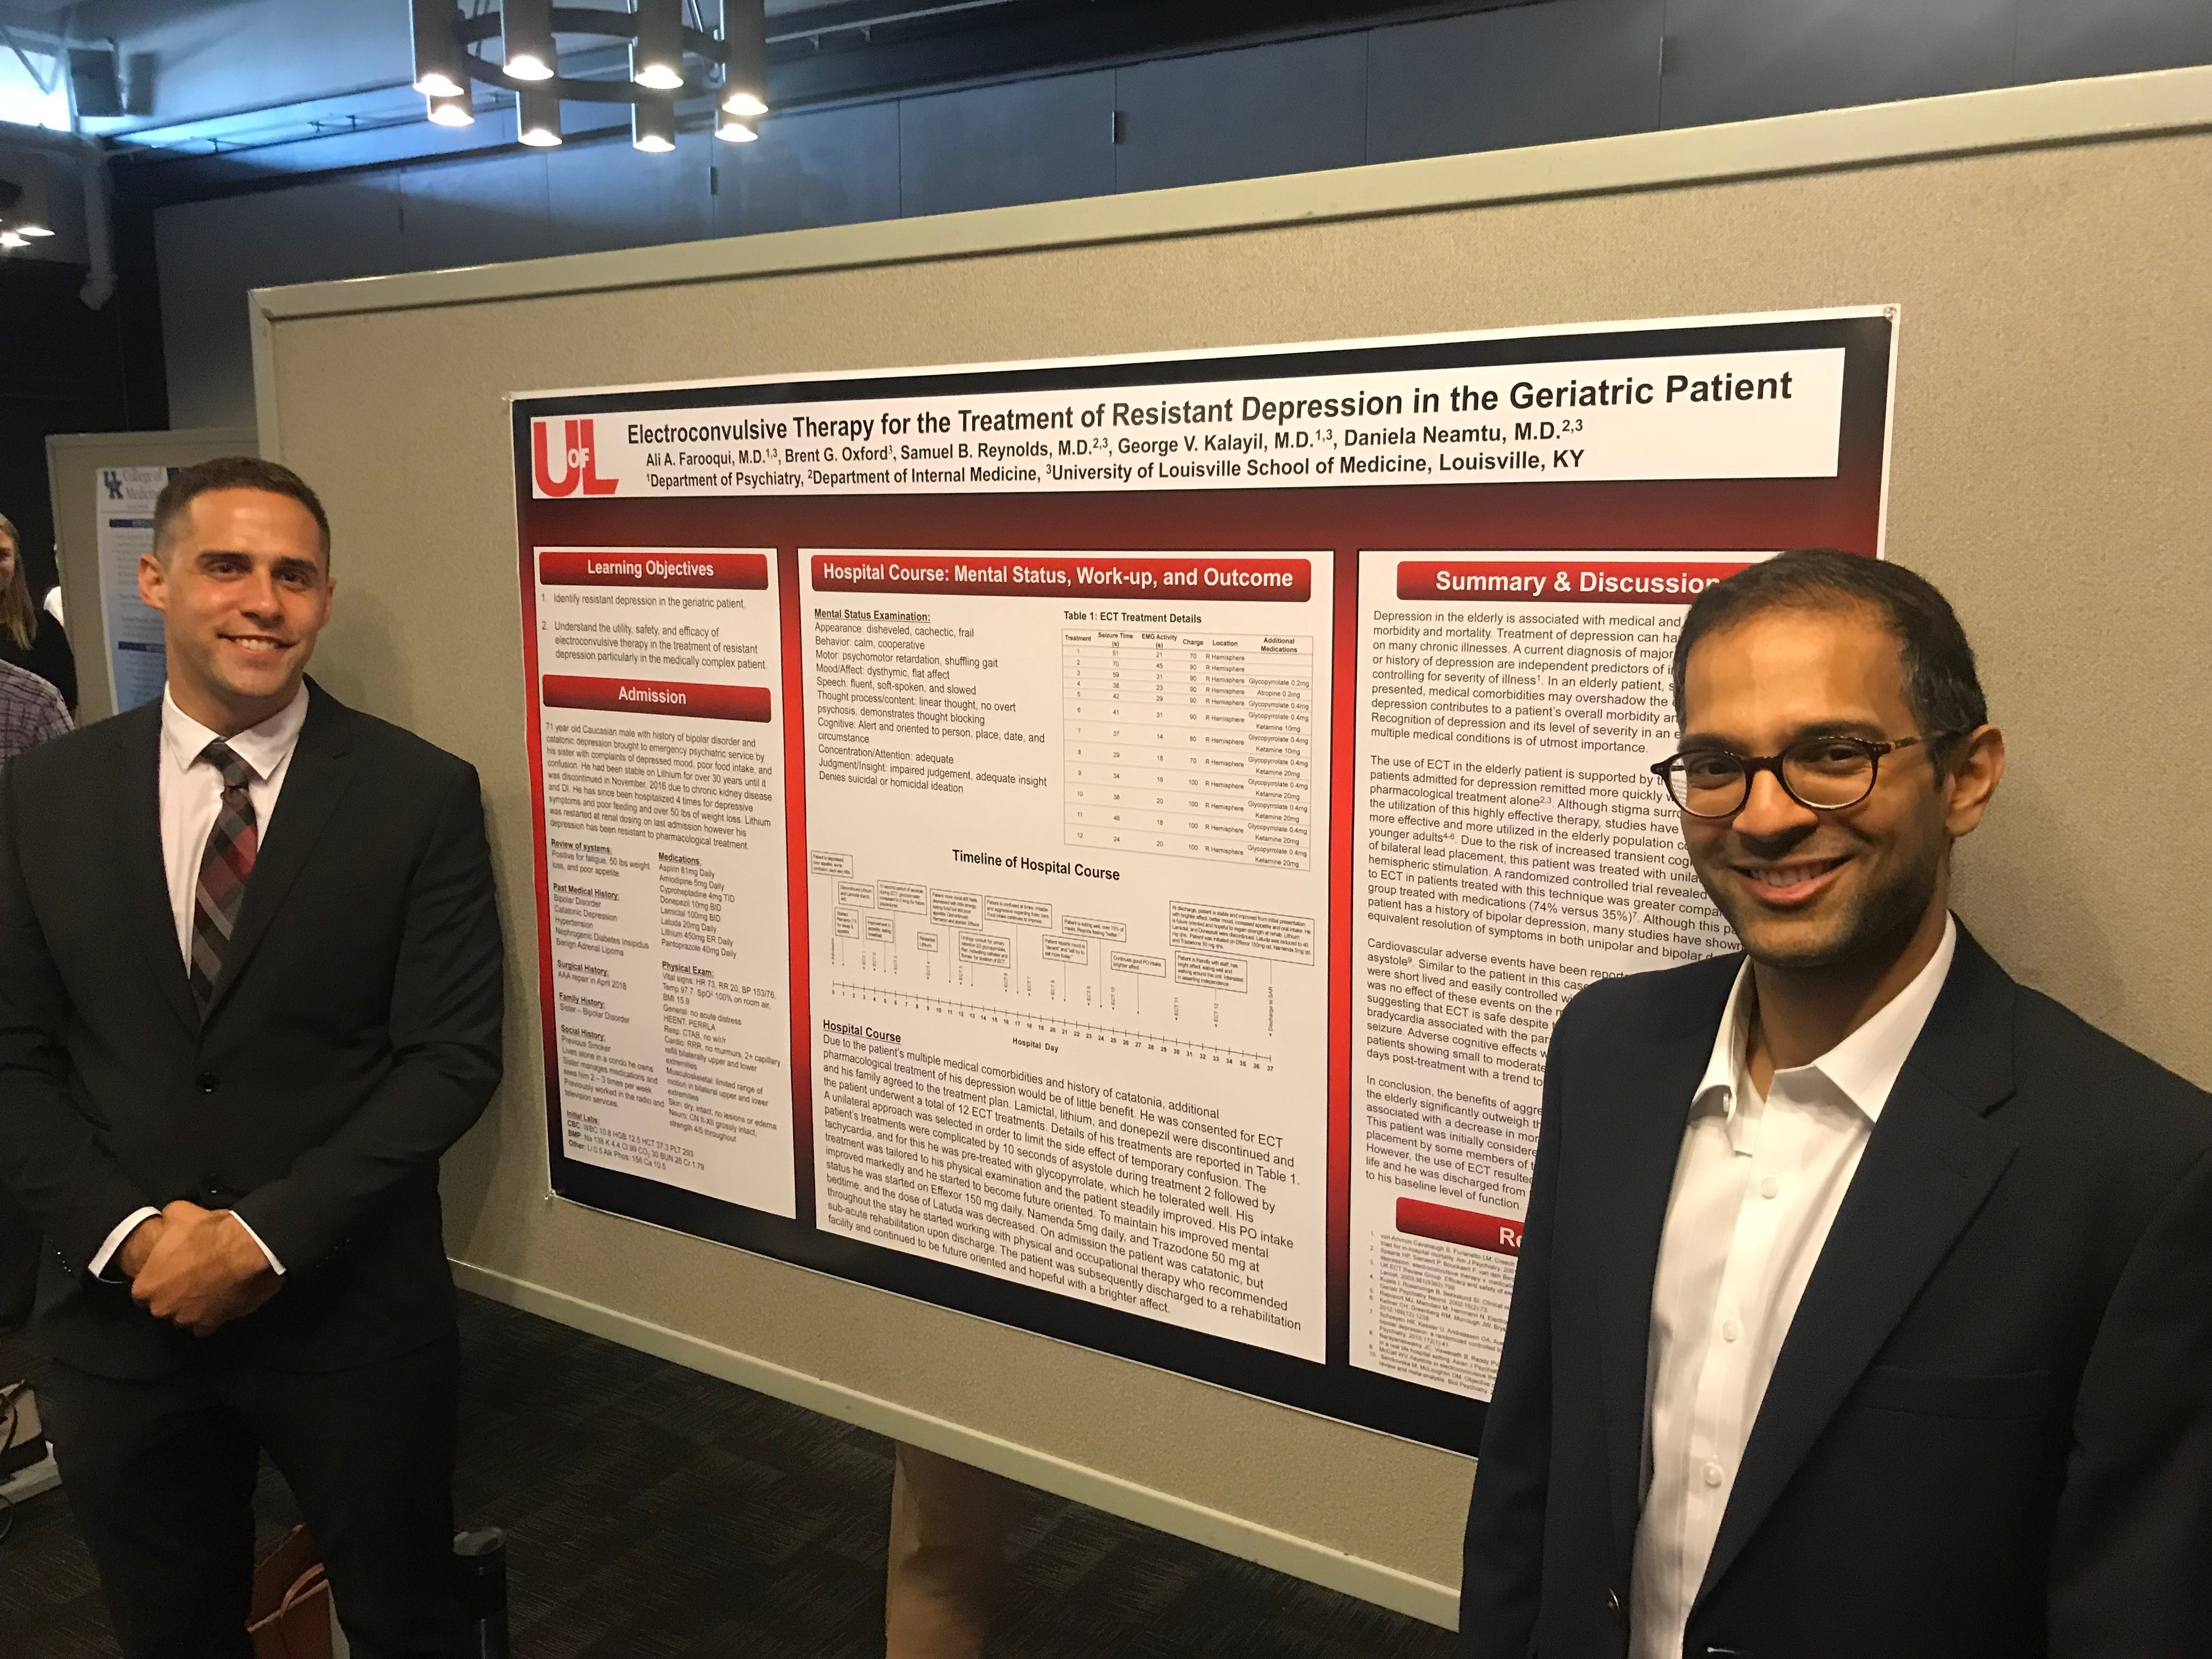 Ali Farooqui and George Kalayil Poster Presentation on Electroconvulsive Therapy for the Treatment of Resistant Depression in the Geriatric Patient